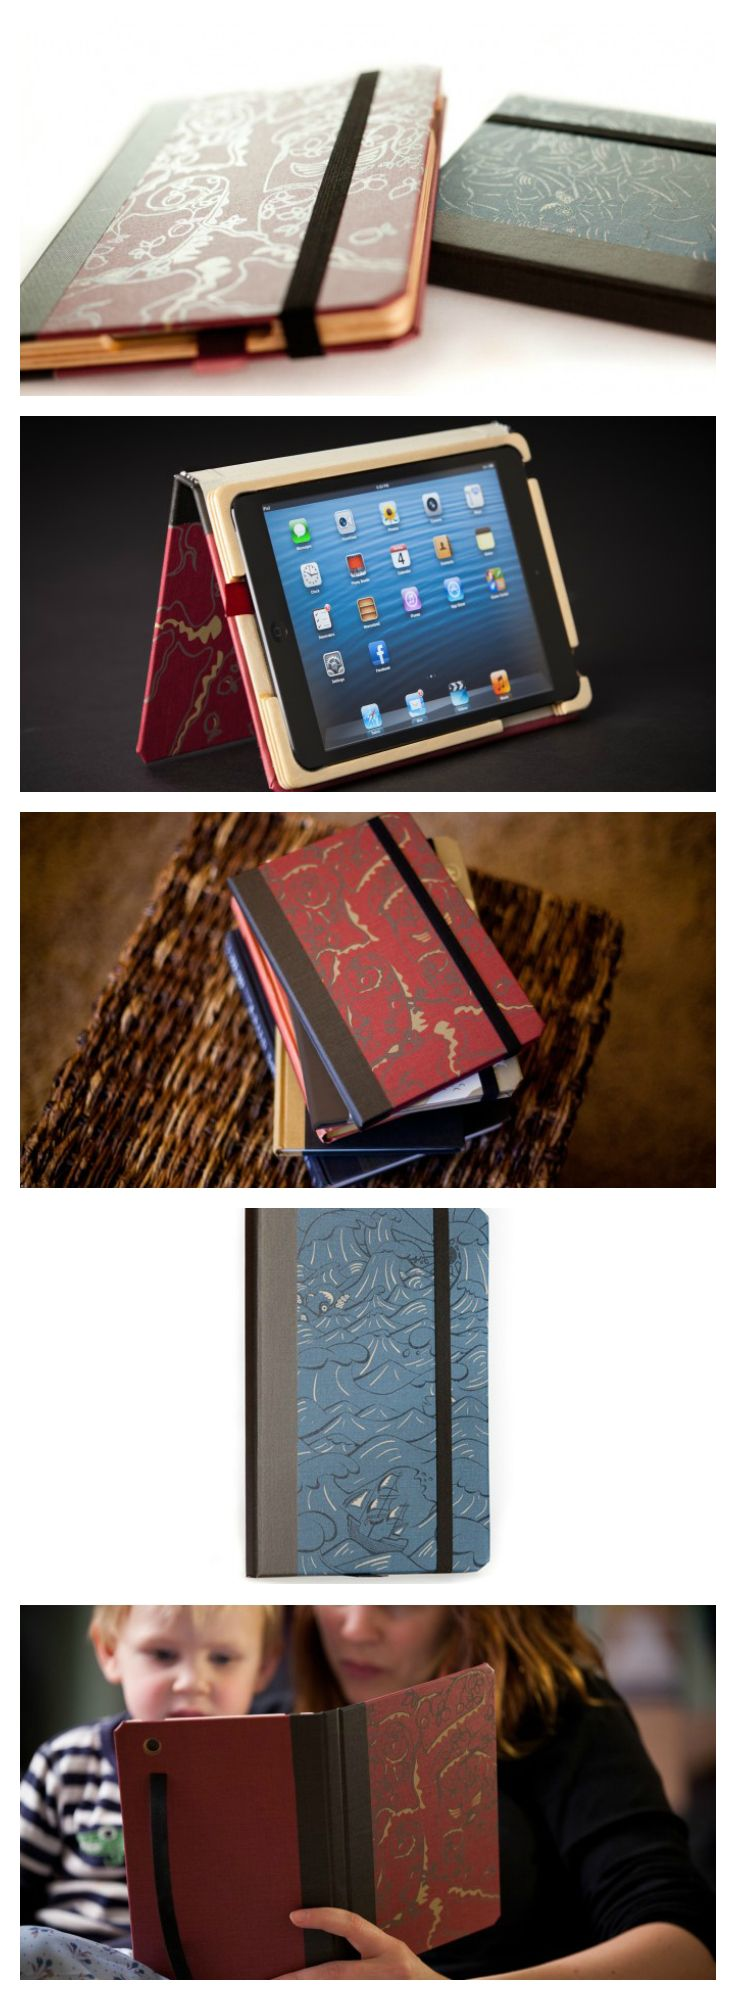 PQ is proud to introduce our Graduate Artist Edition for the iPad mini. Local Minneapolis artists have created these covers in the series using traditional silk screen techniques. Collect them all! :)